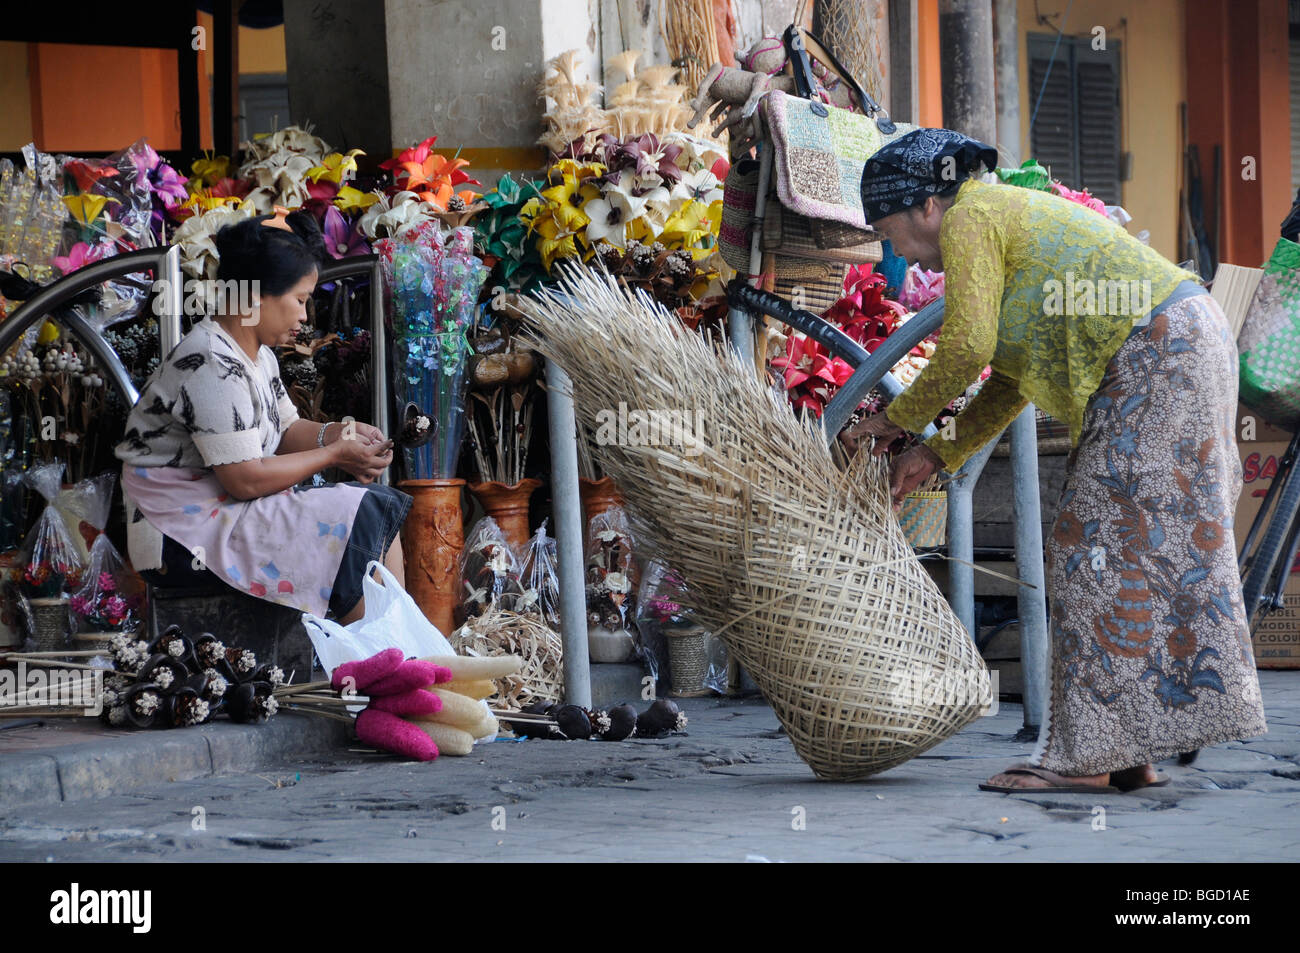 Woman selling baskets as packaging materials to retailers, Jogyakarta, Central Java, Indonesia, Southeast Asia, - Stock Image